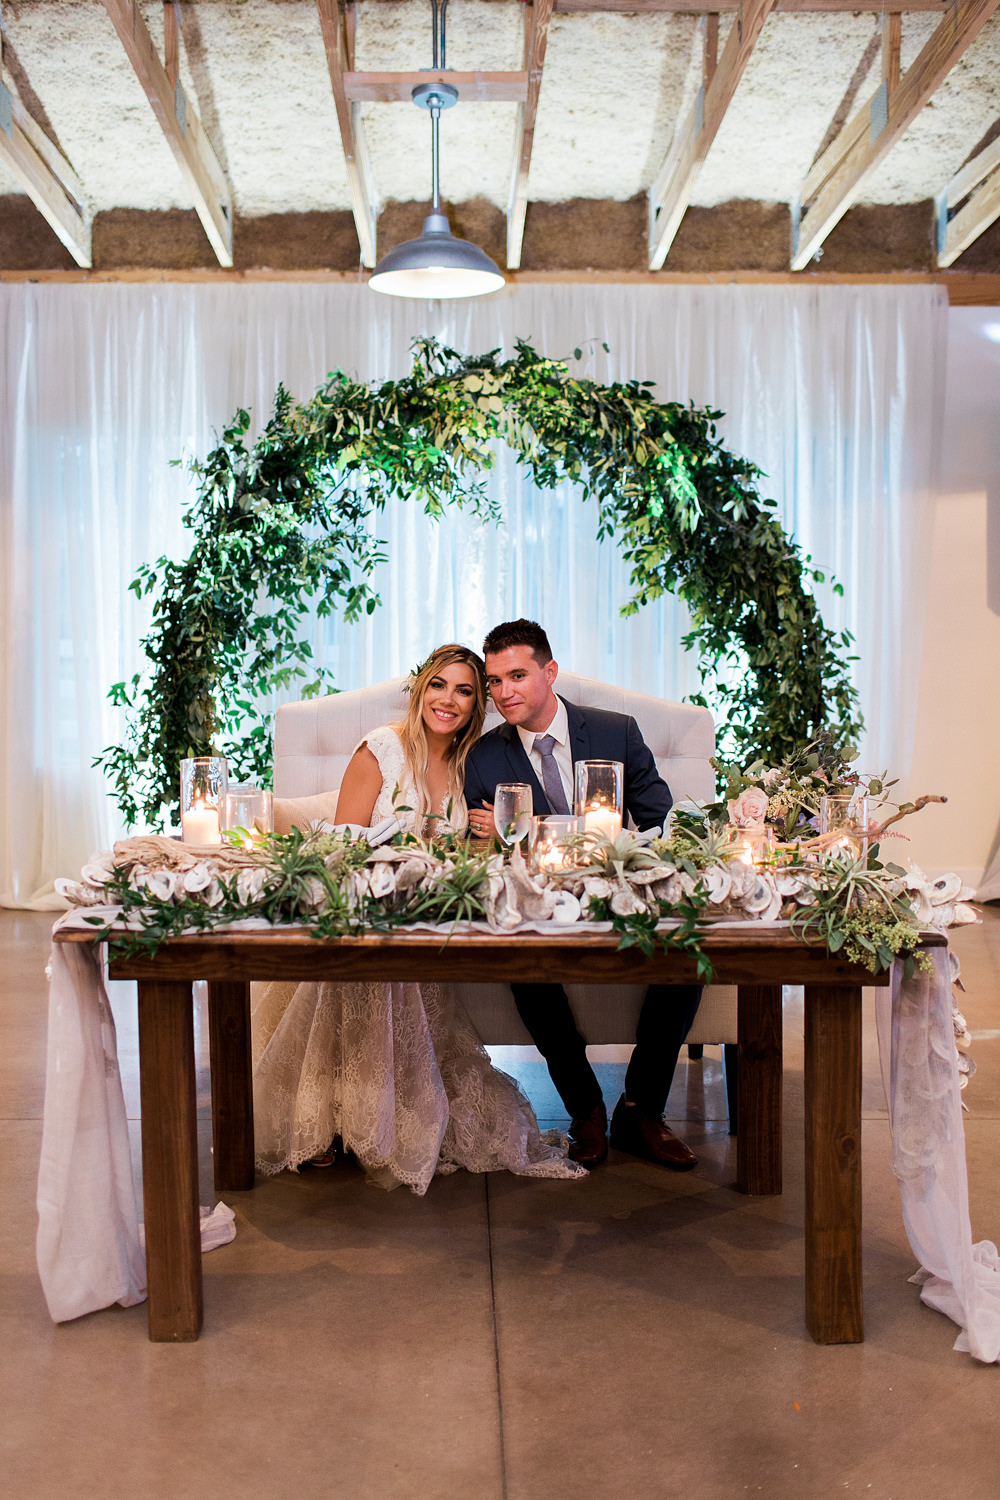 Sweetheart table using an infinity arch and white draping as the backdrop.